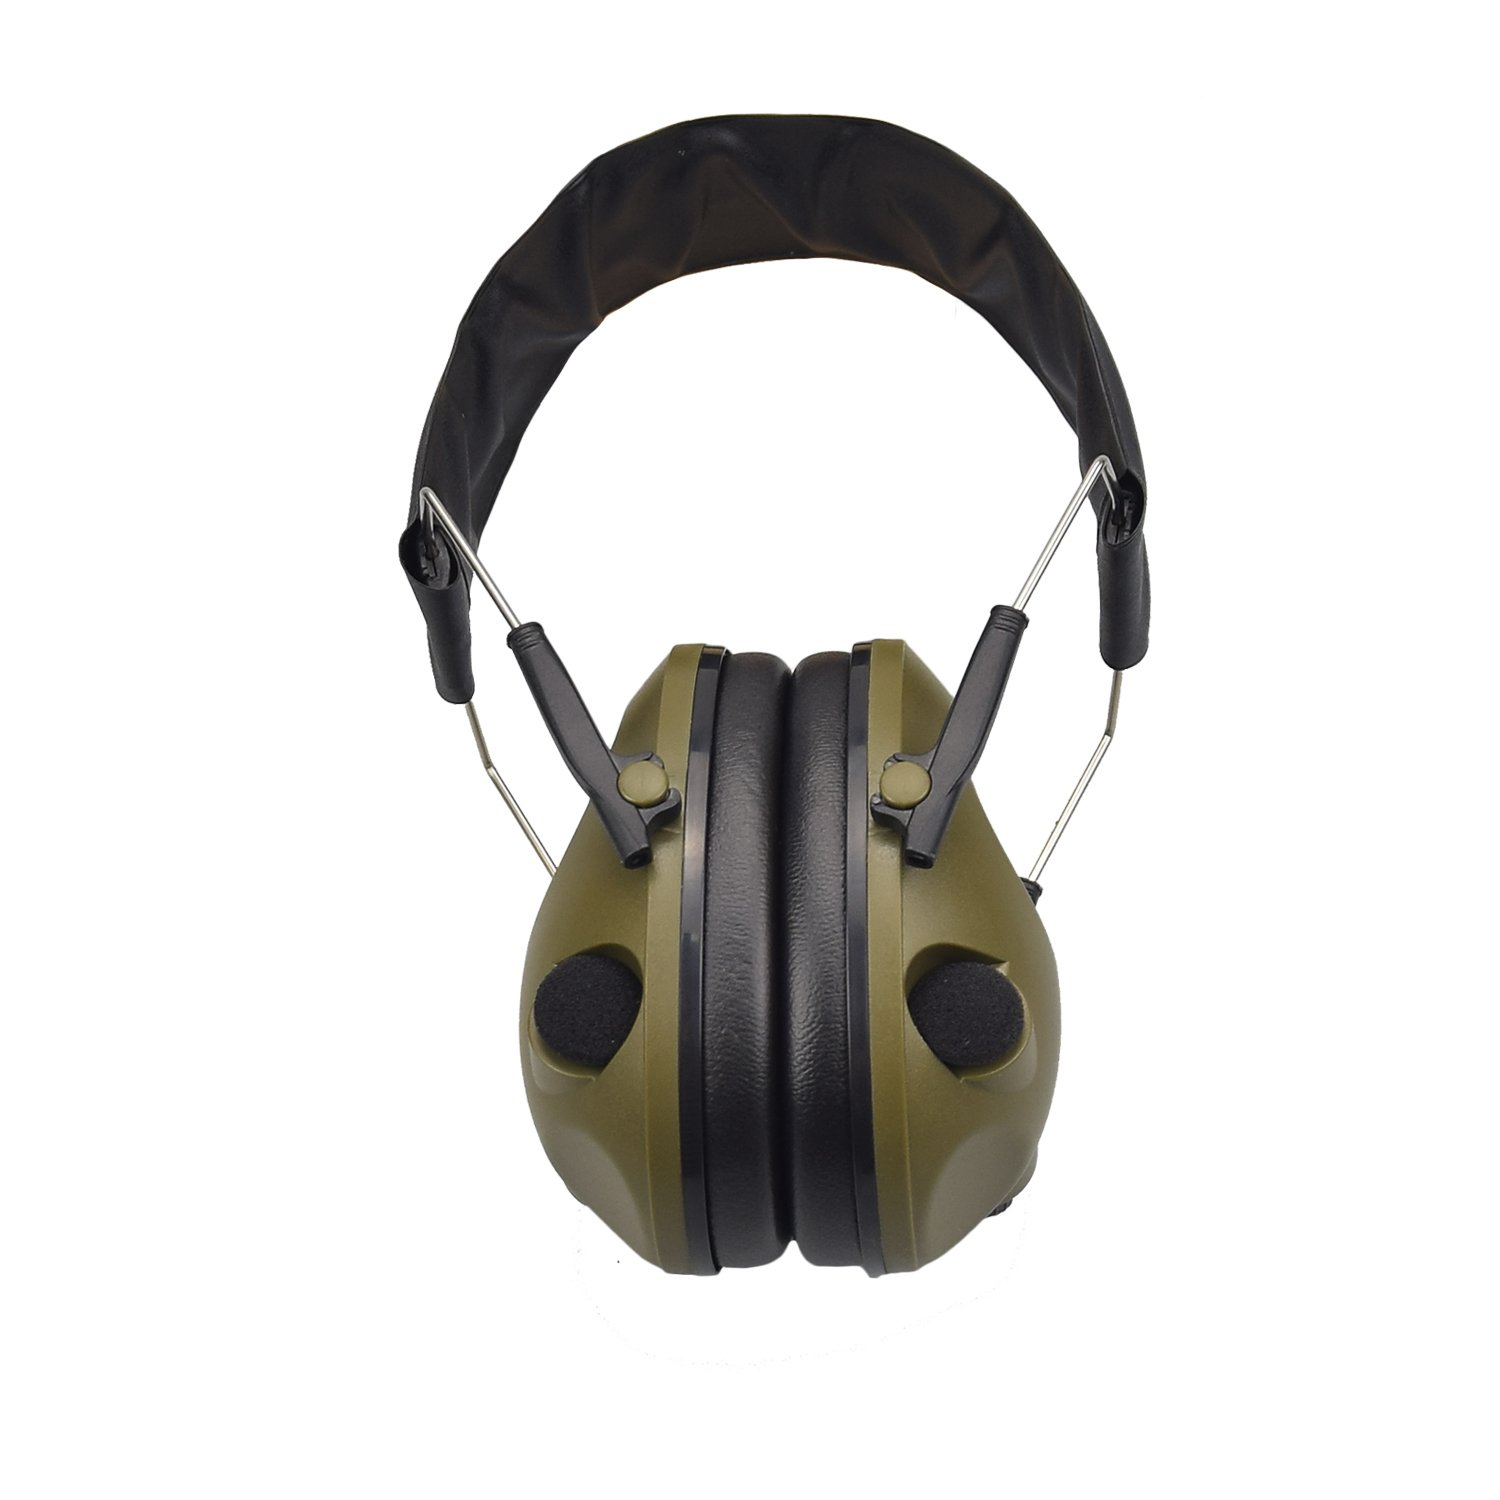 XAegis Ear Muffs Noise Protection,Noise Cancelling Hunting/Shooting Sound Earmuffs NRR 20dB,Army Green